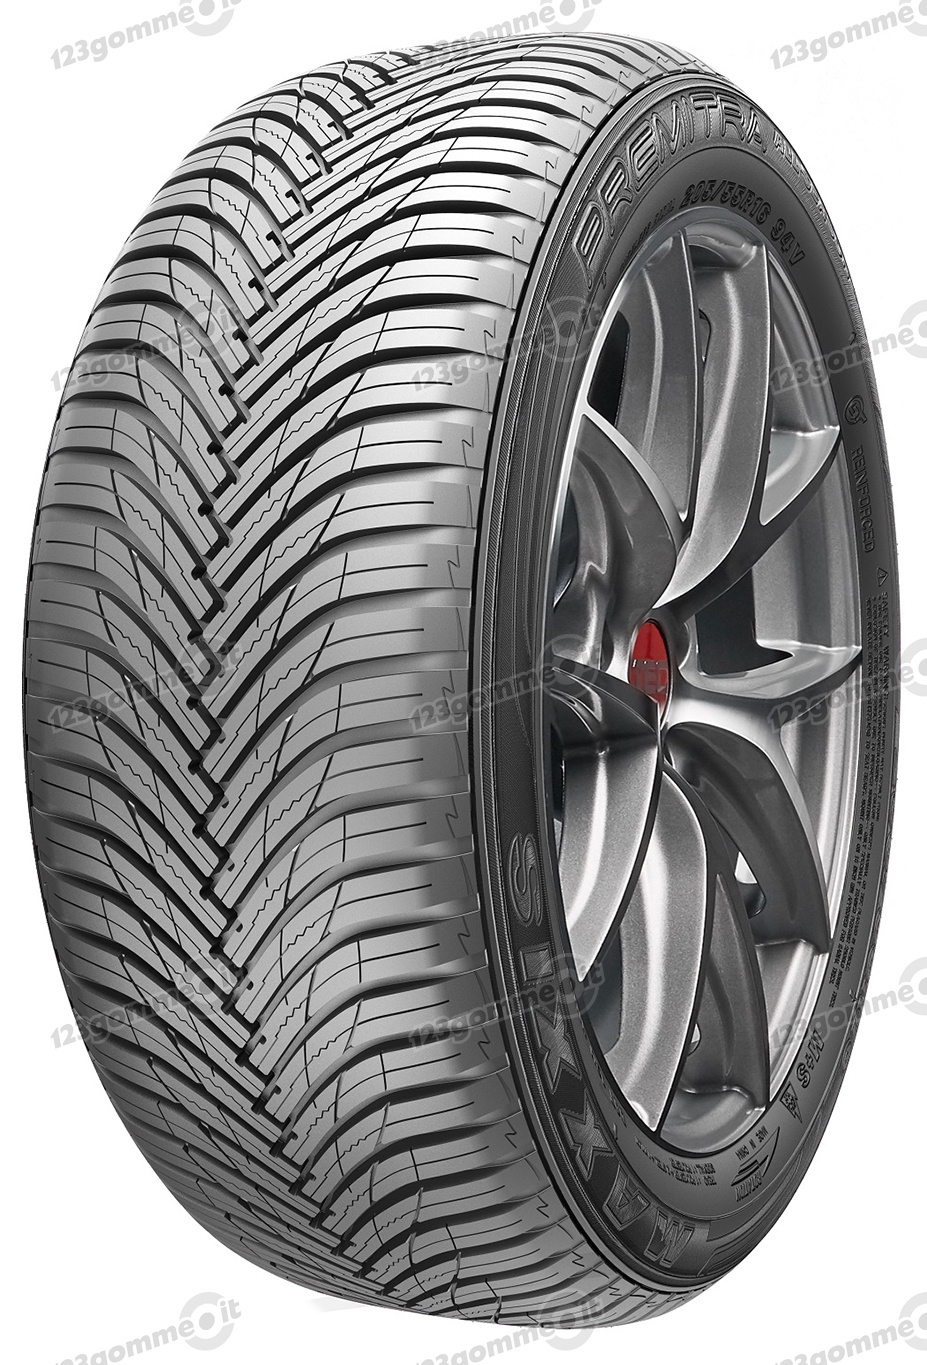 205/55 R16 94V AP3 Premitra All Season XL  AP3 Premitra All Season XL